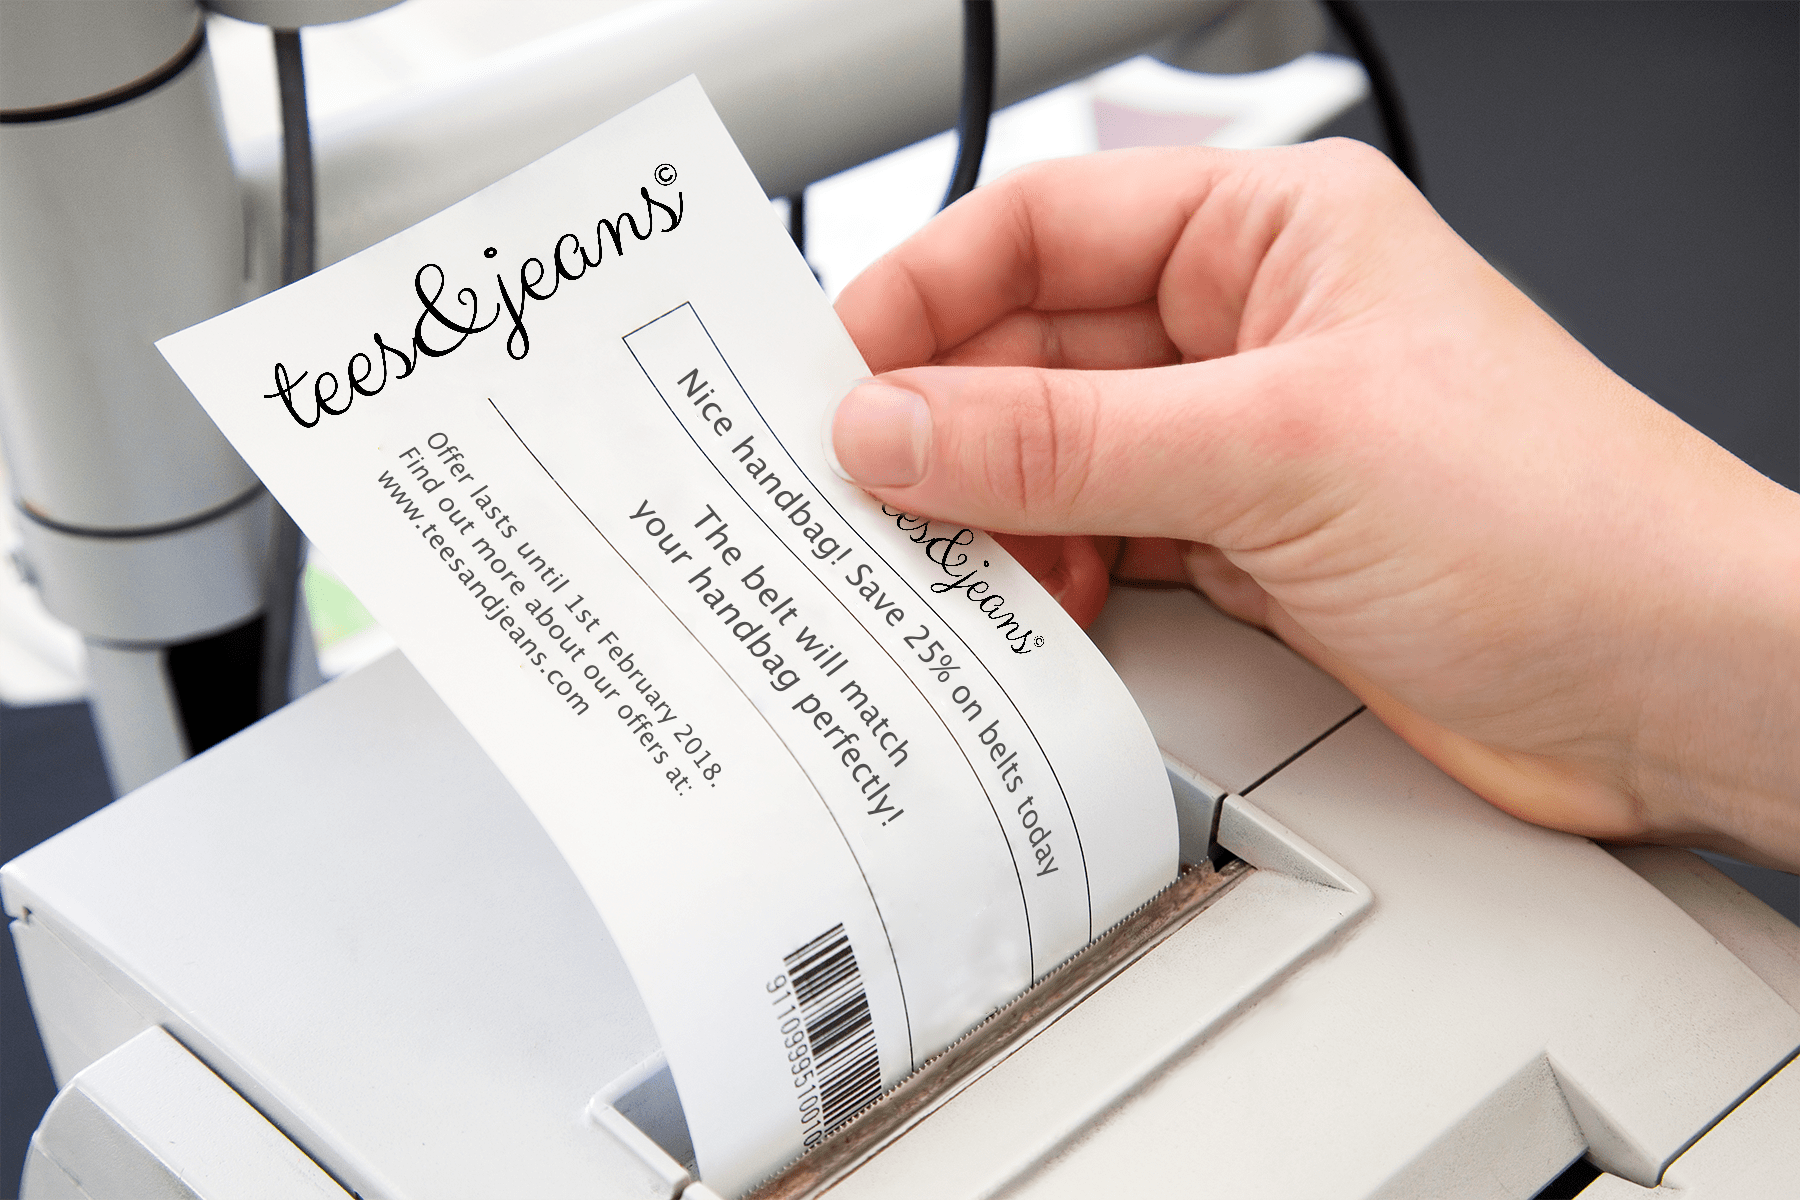 Targeted, relevant coupons drive engagement